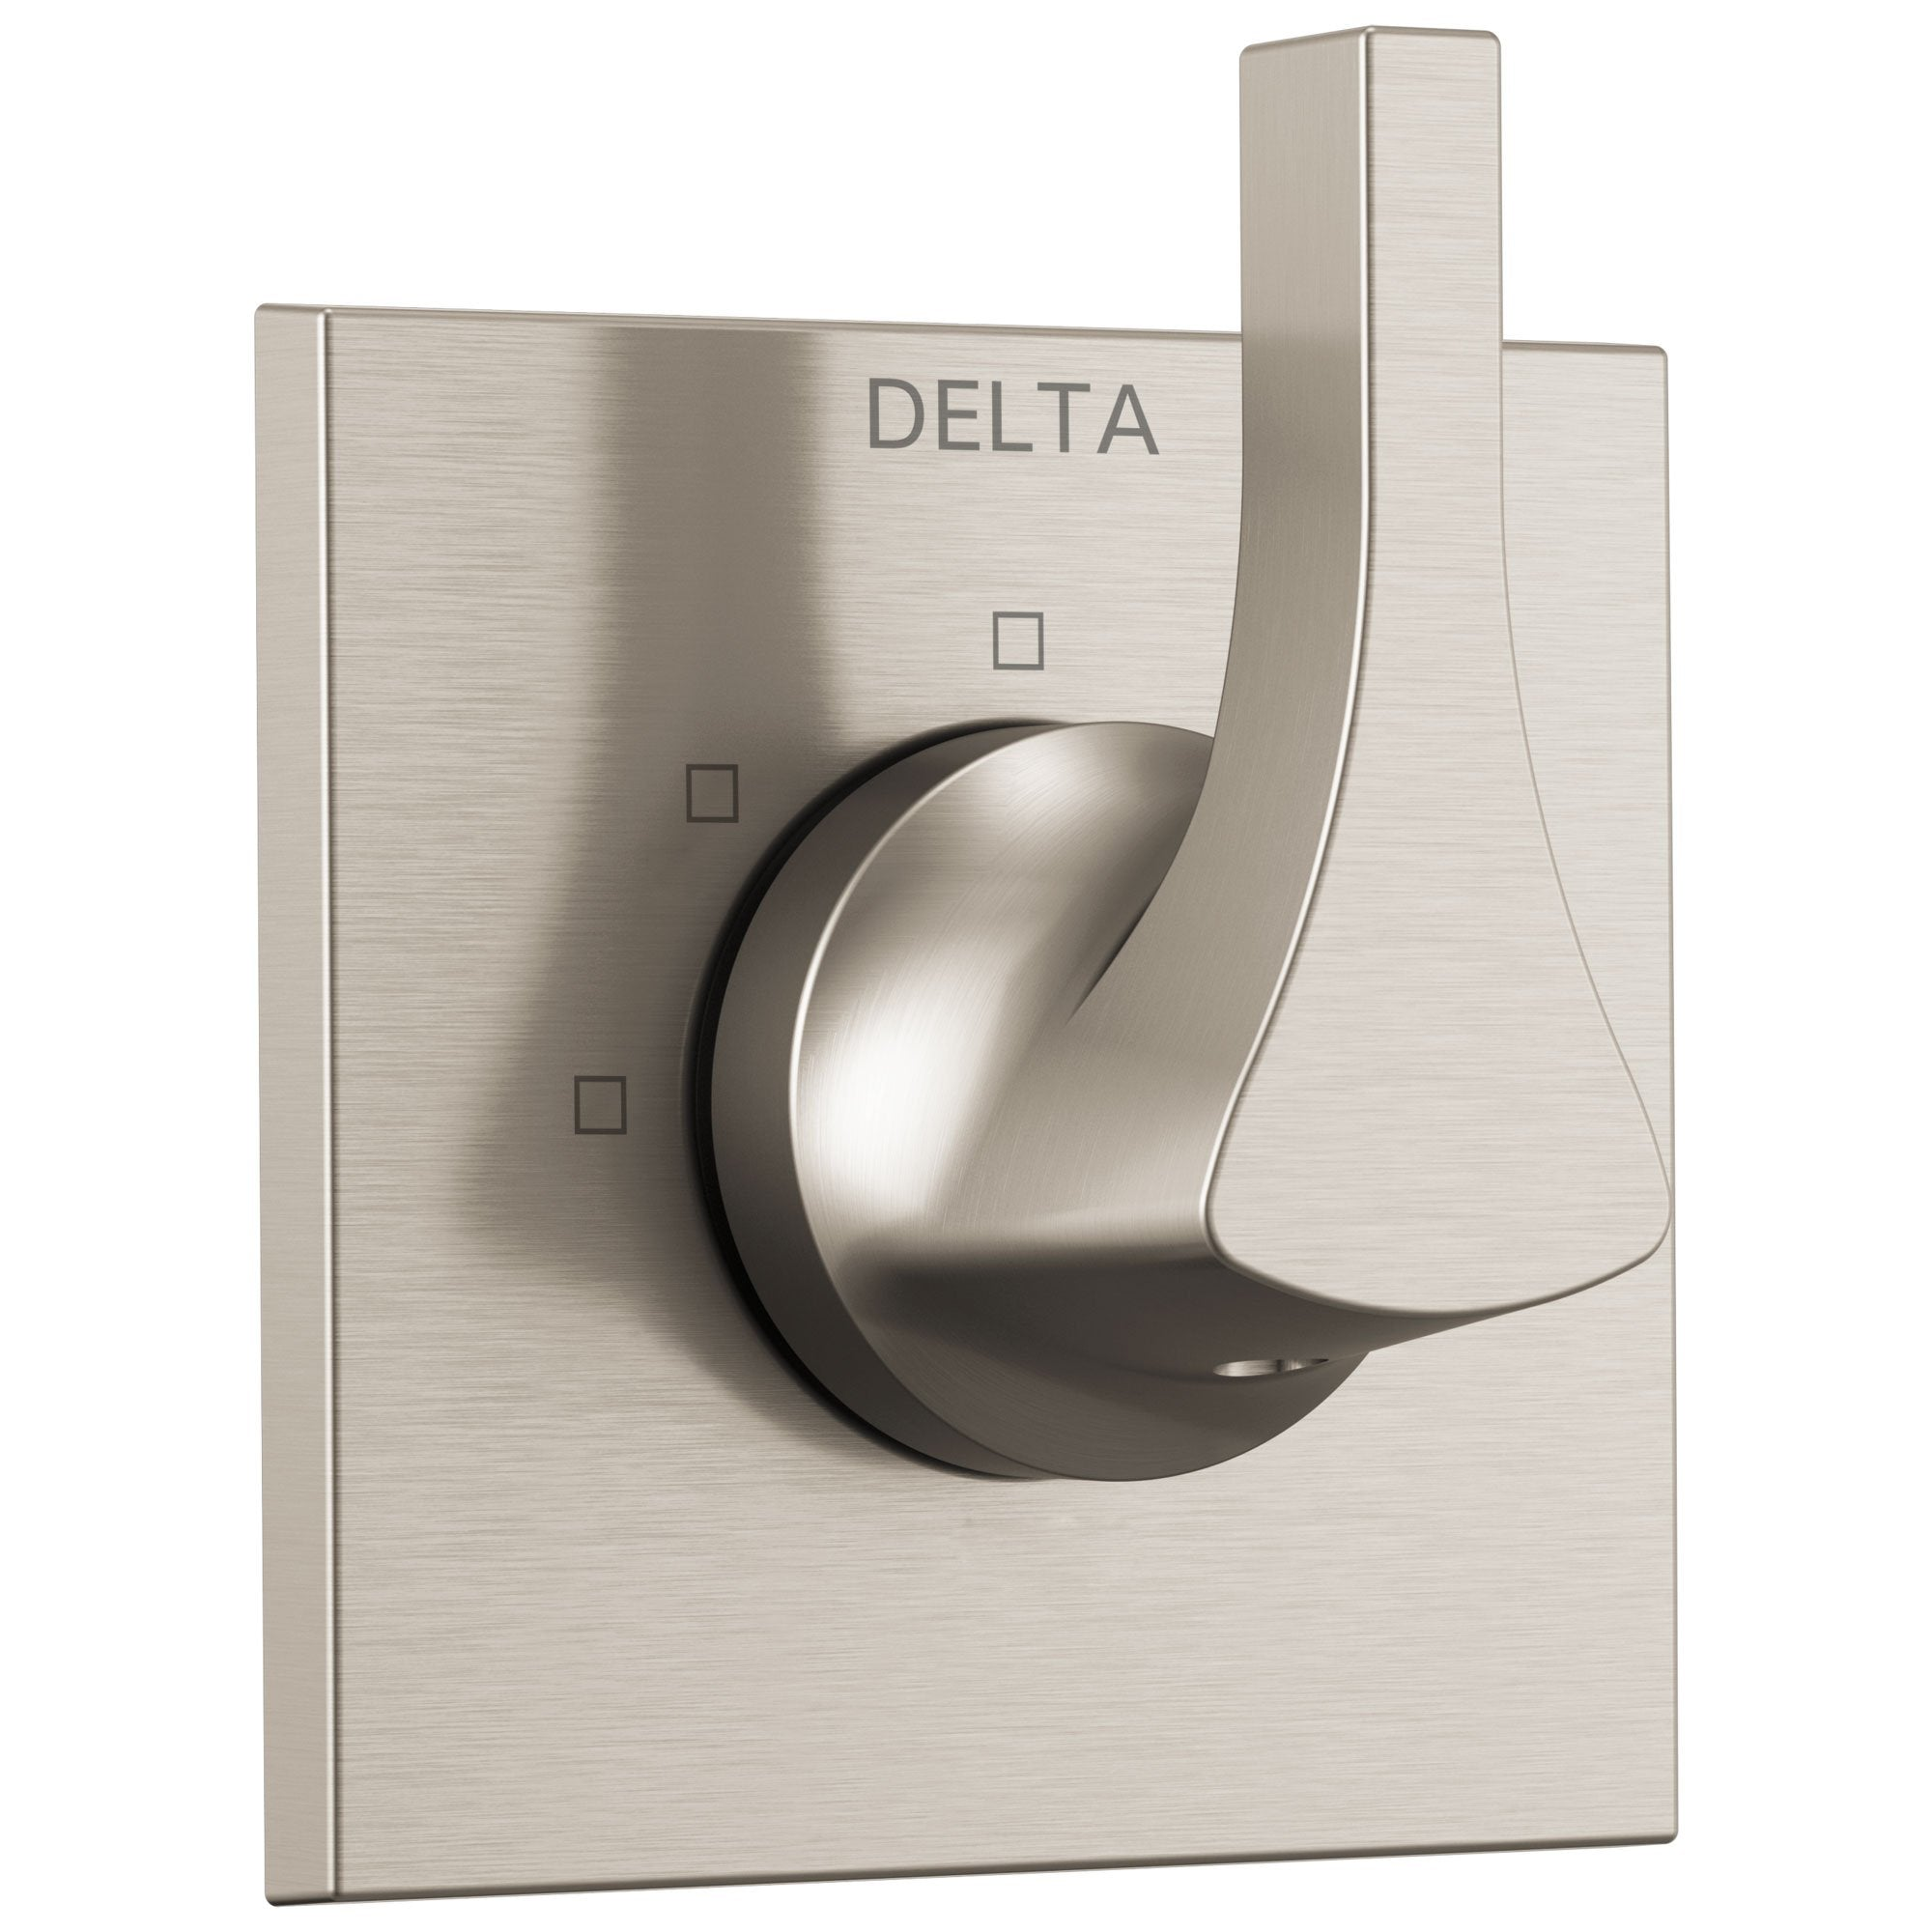 Delta Zura Collection Stainless Steel Finish Modern 3-Setting 2-Port Single Handle Shower Diverter Includes Rough-in Valve D2056V